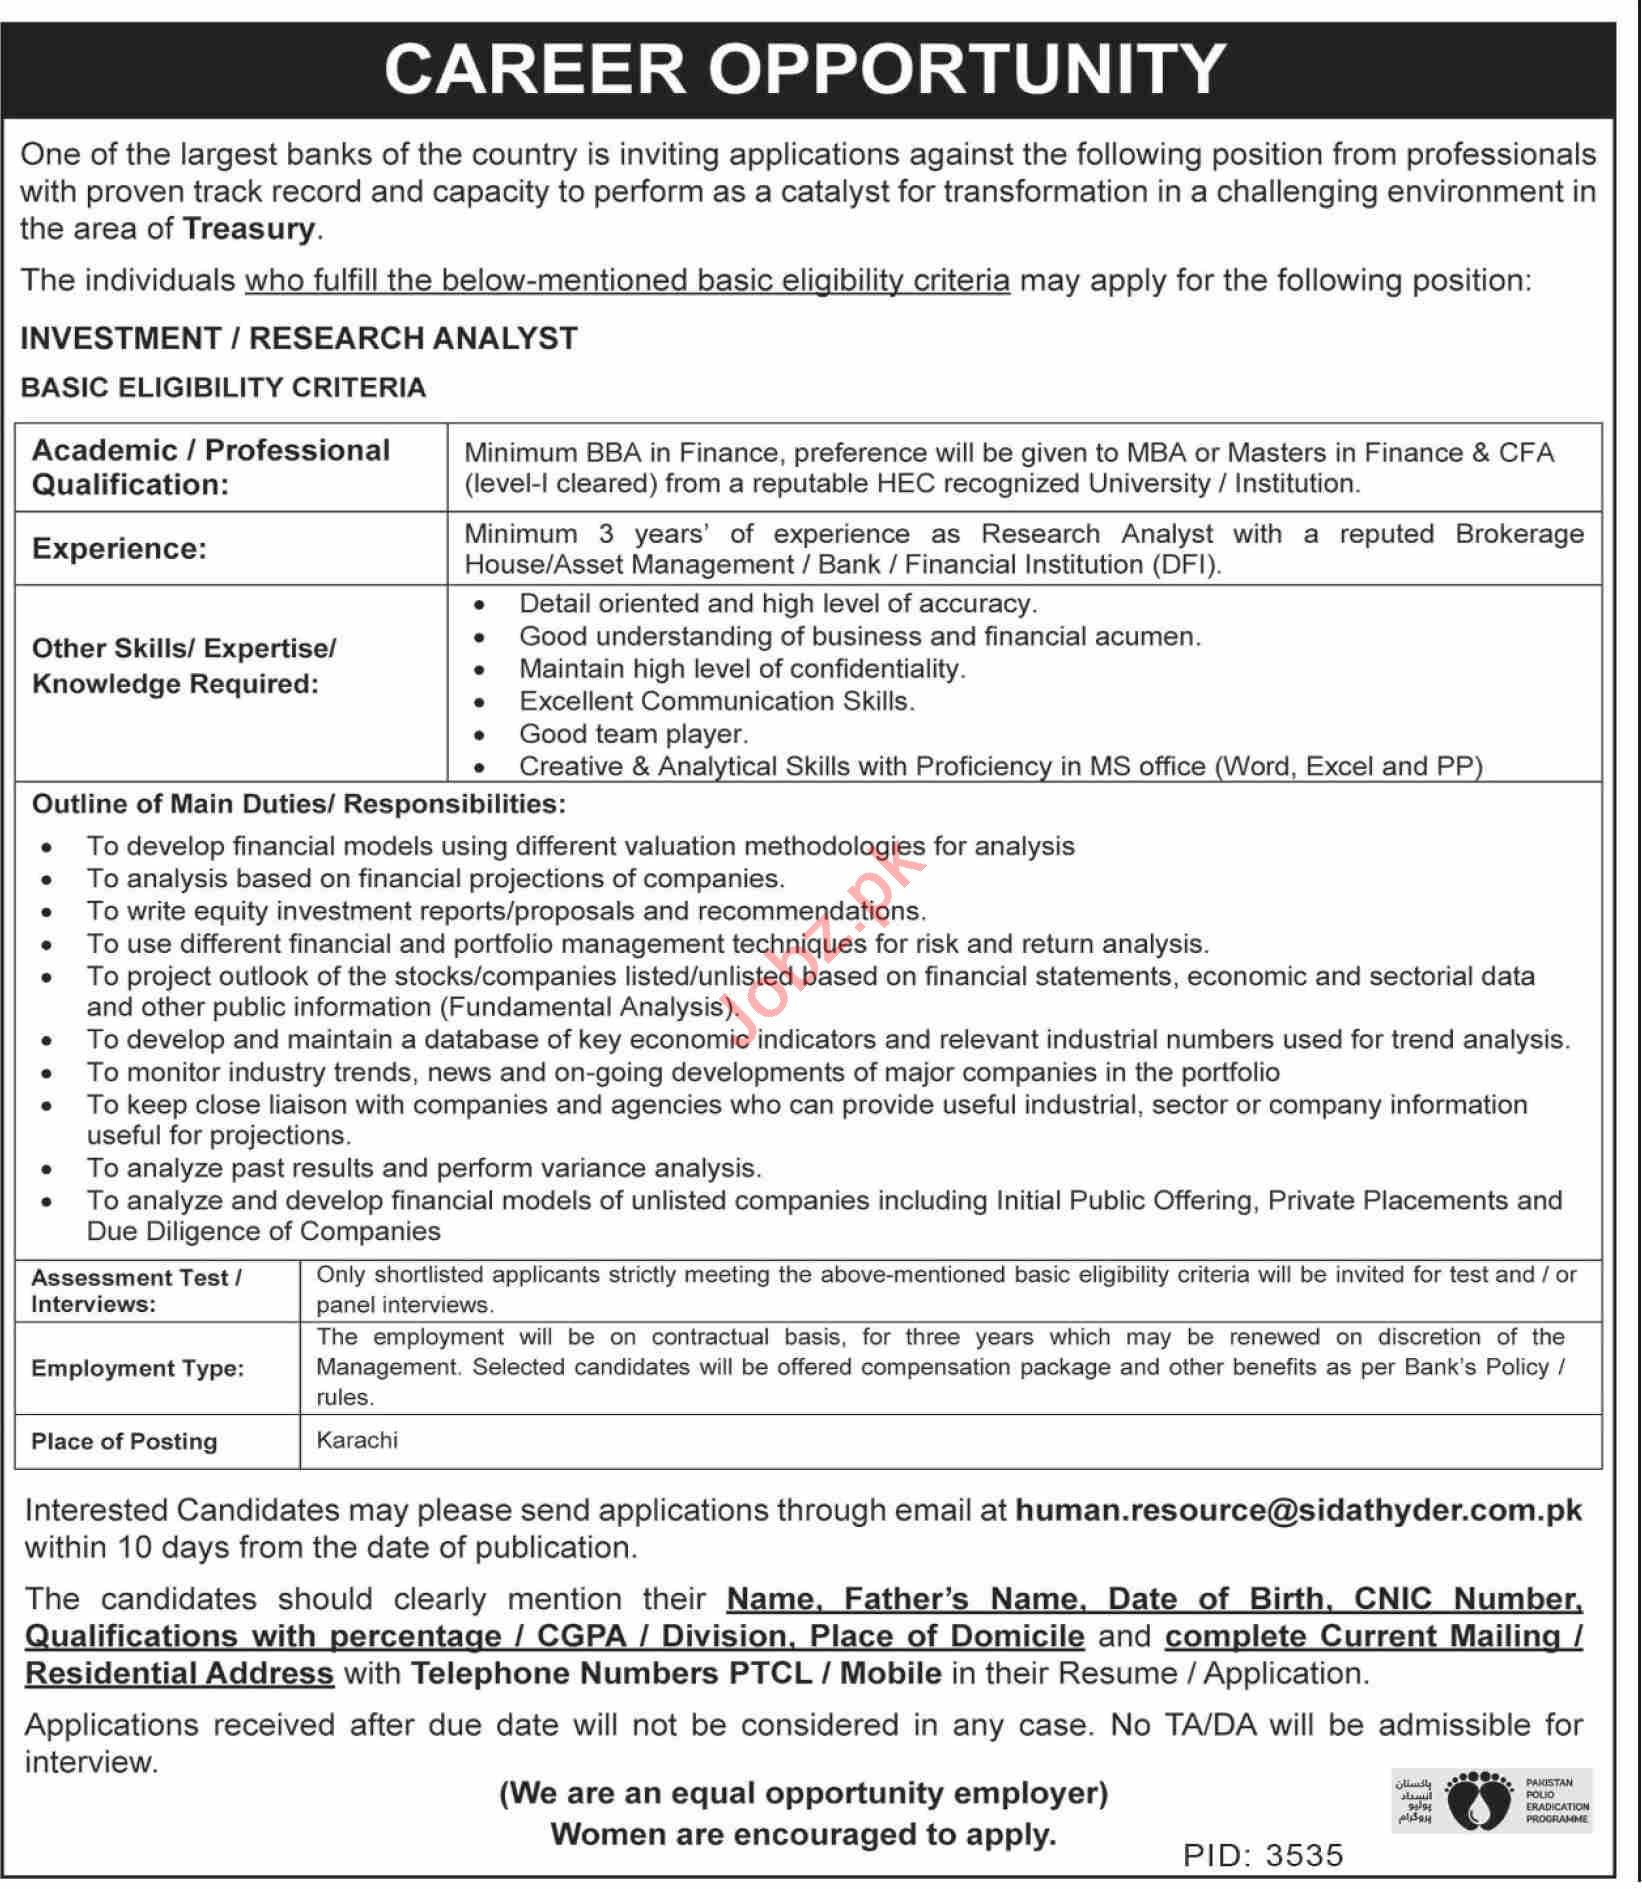 Research Analyst & Investment Analyst Jobs 2020